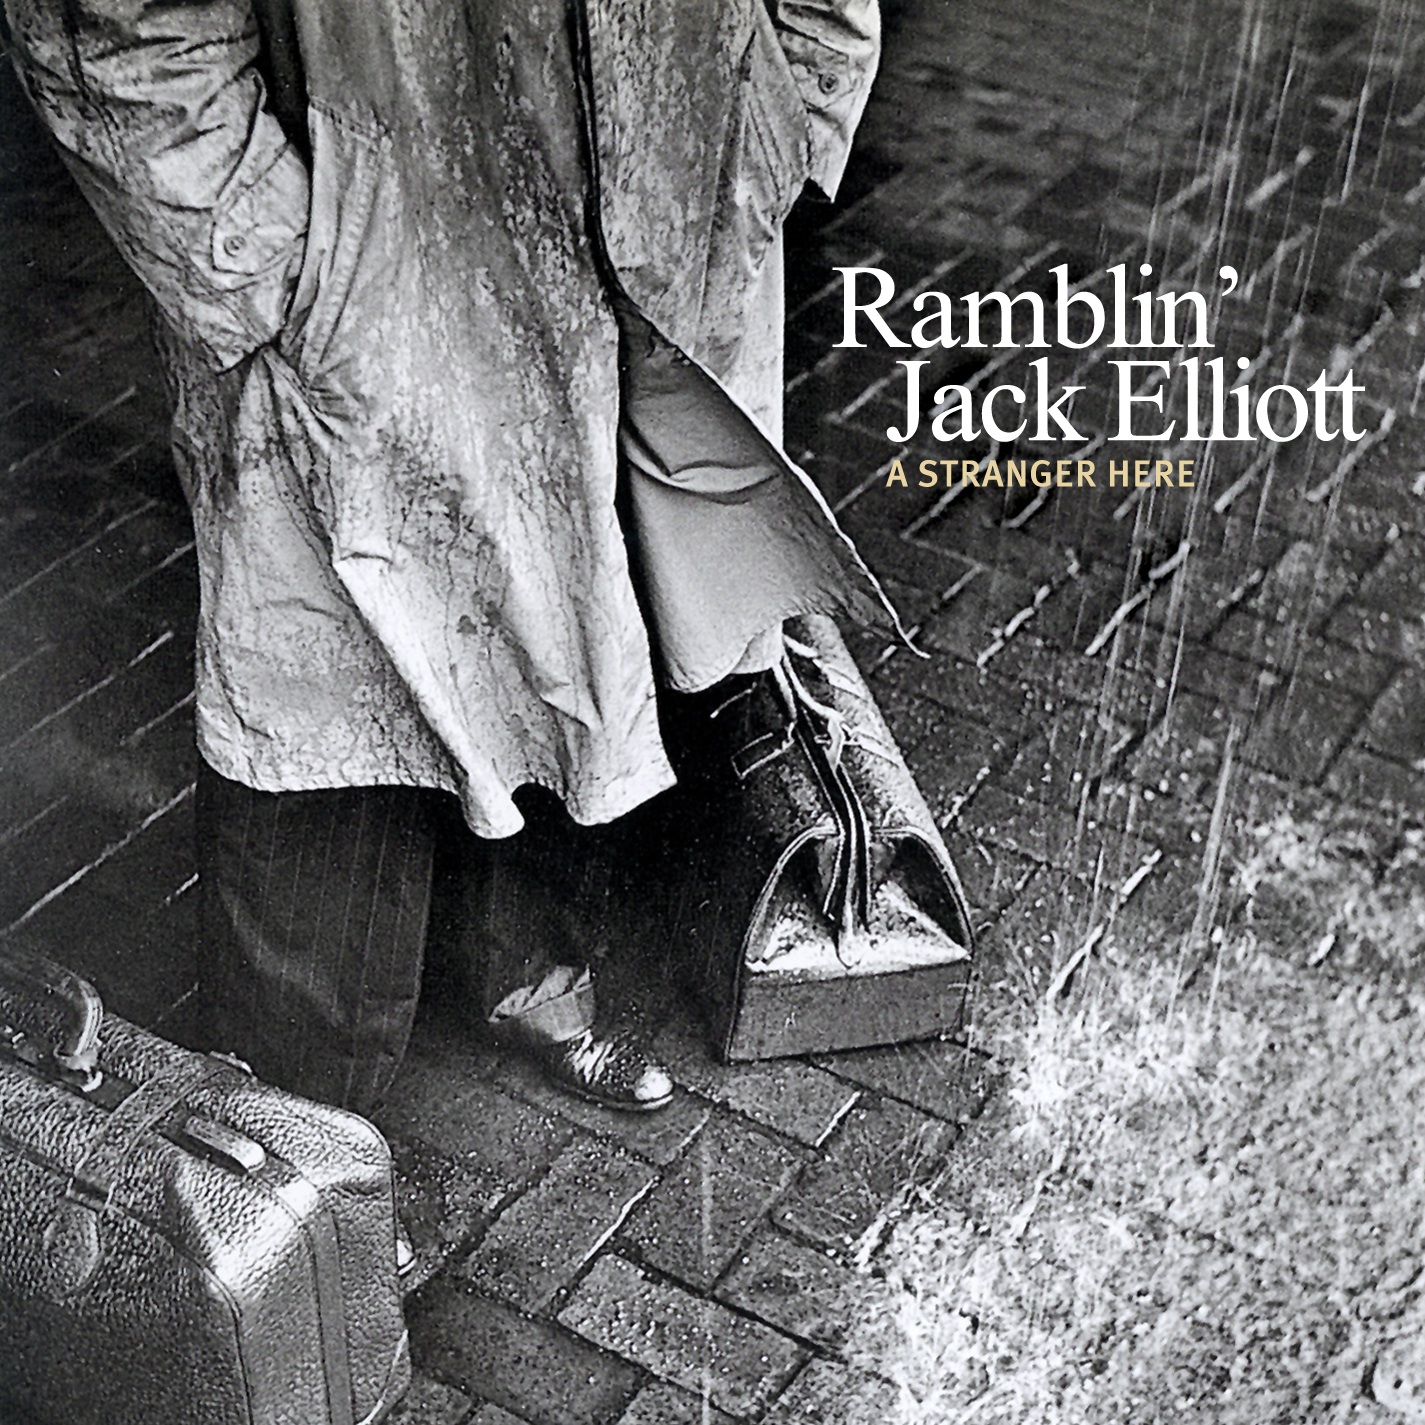 Ramblin Jack Elliott Photo